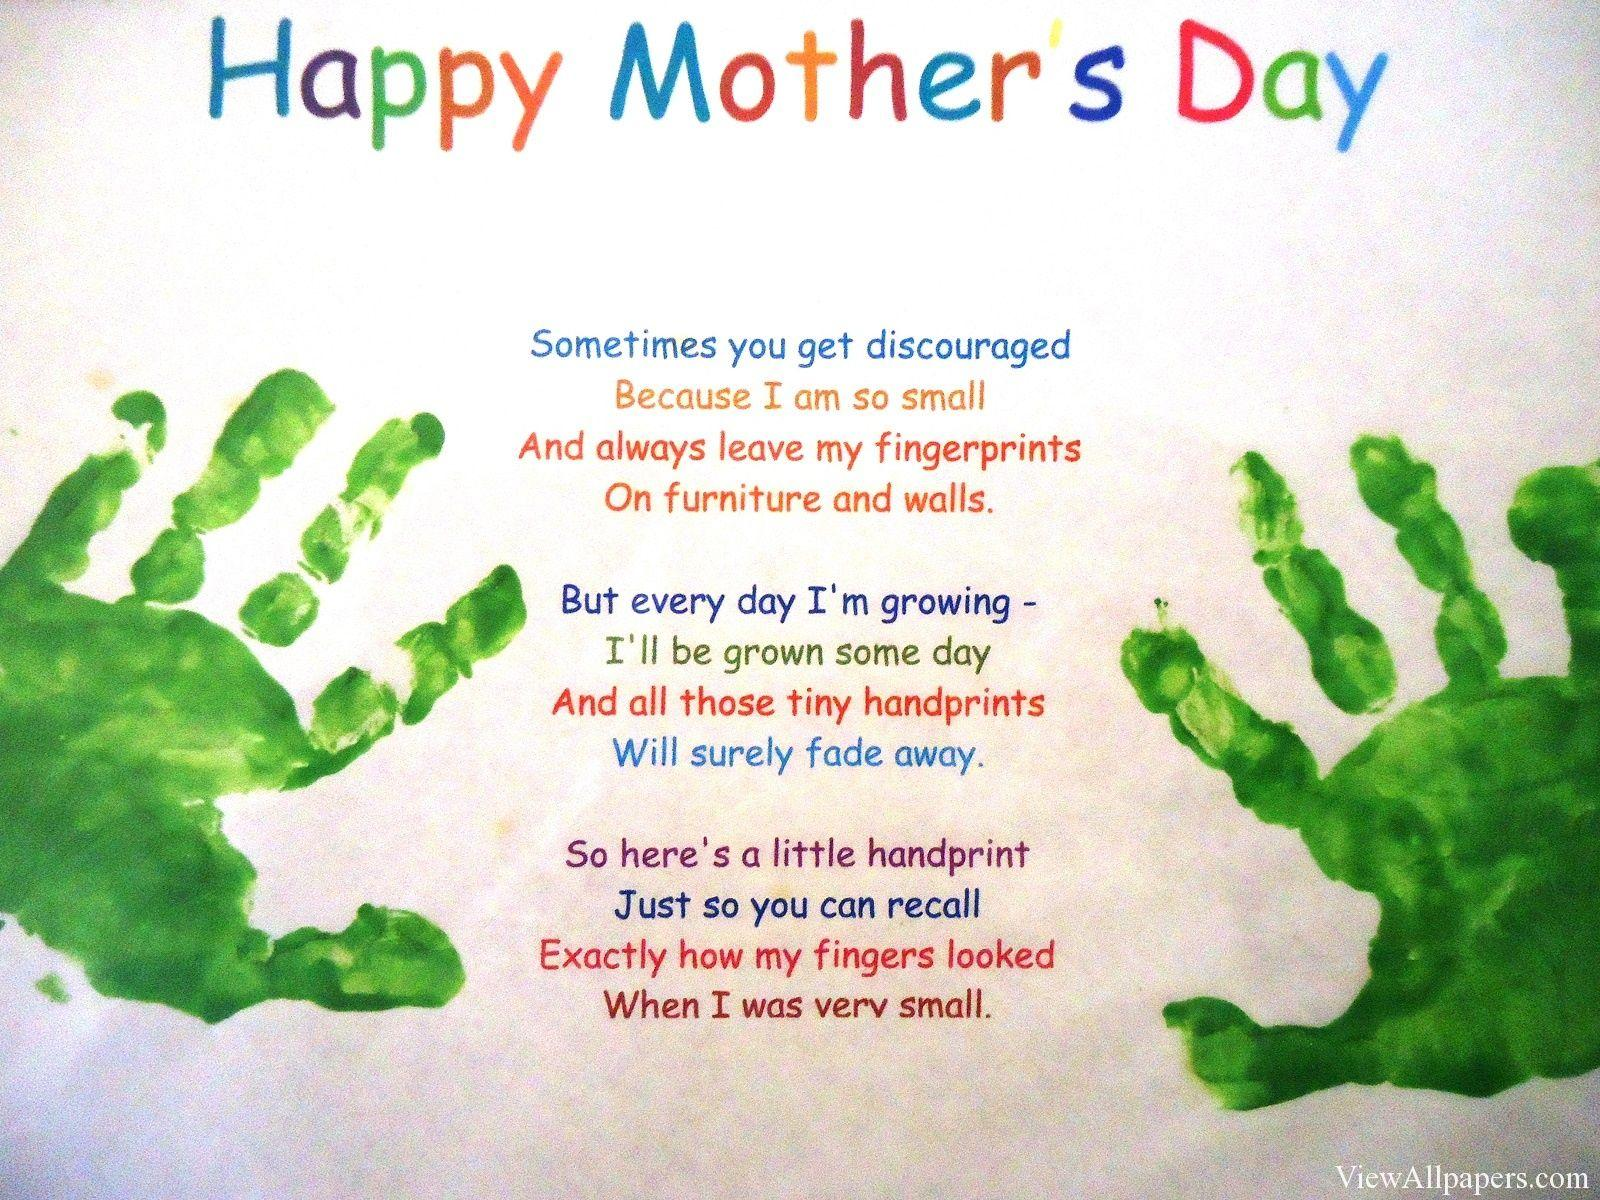 Mothers Day Handprint Poem High Resolution Wallpaper, Free ...